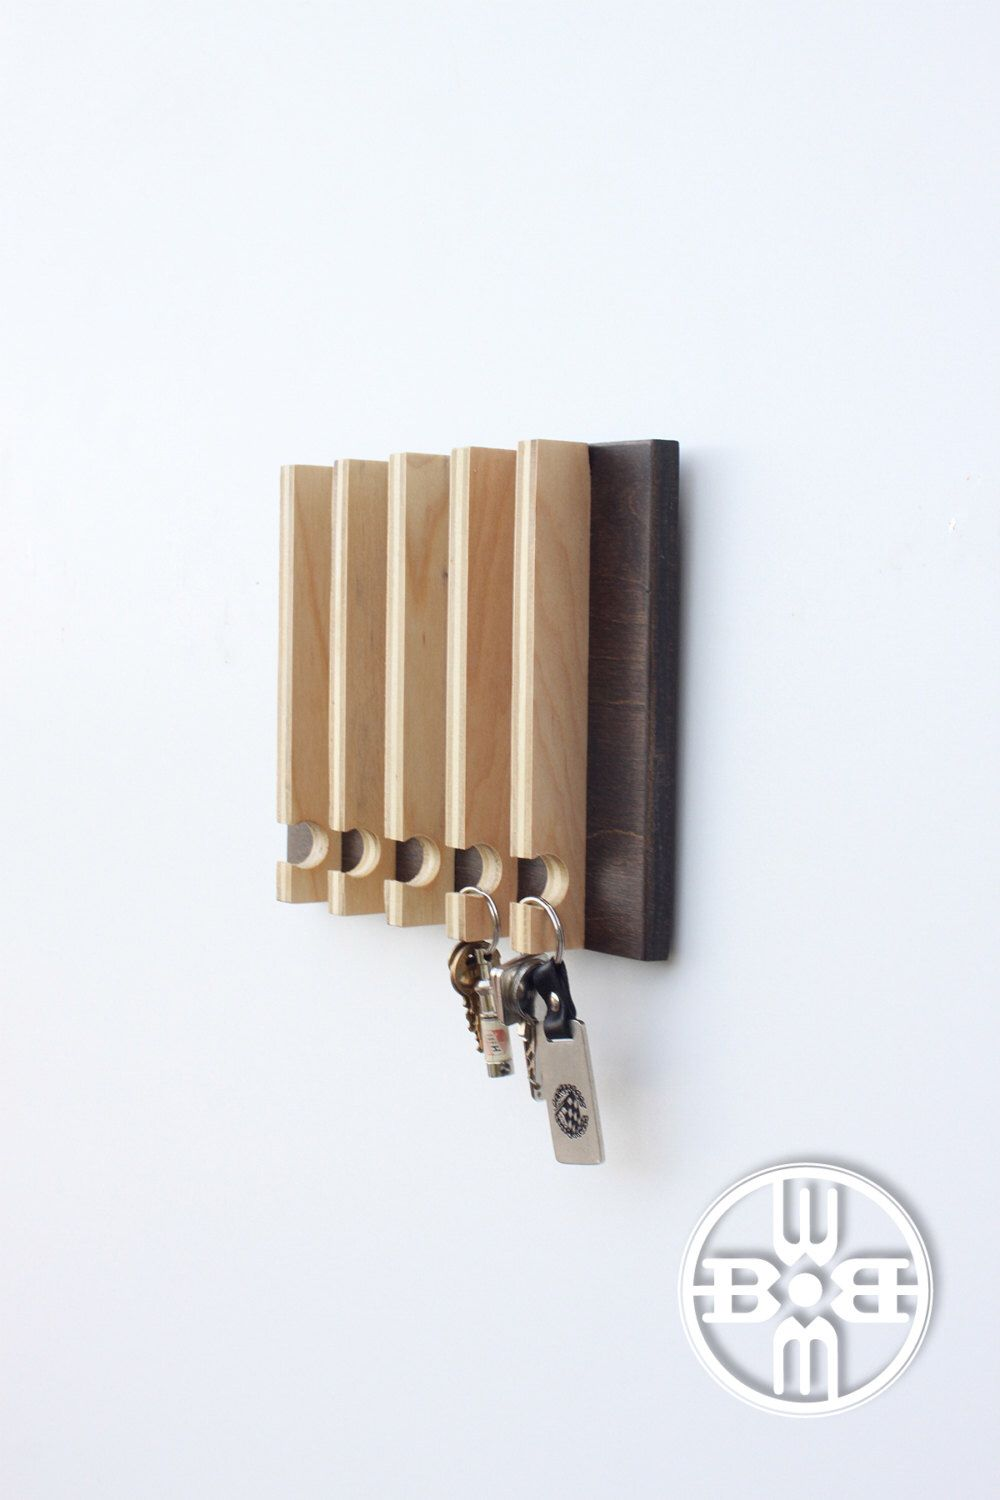 Modern Key Rack - Modern Entryway Wall Storage, Gift for ...